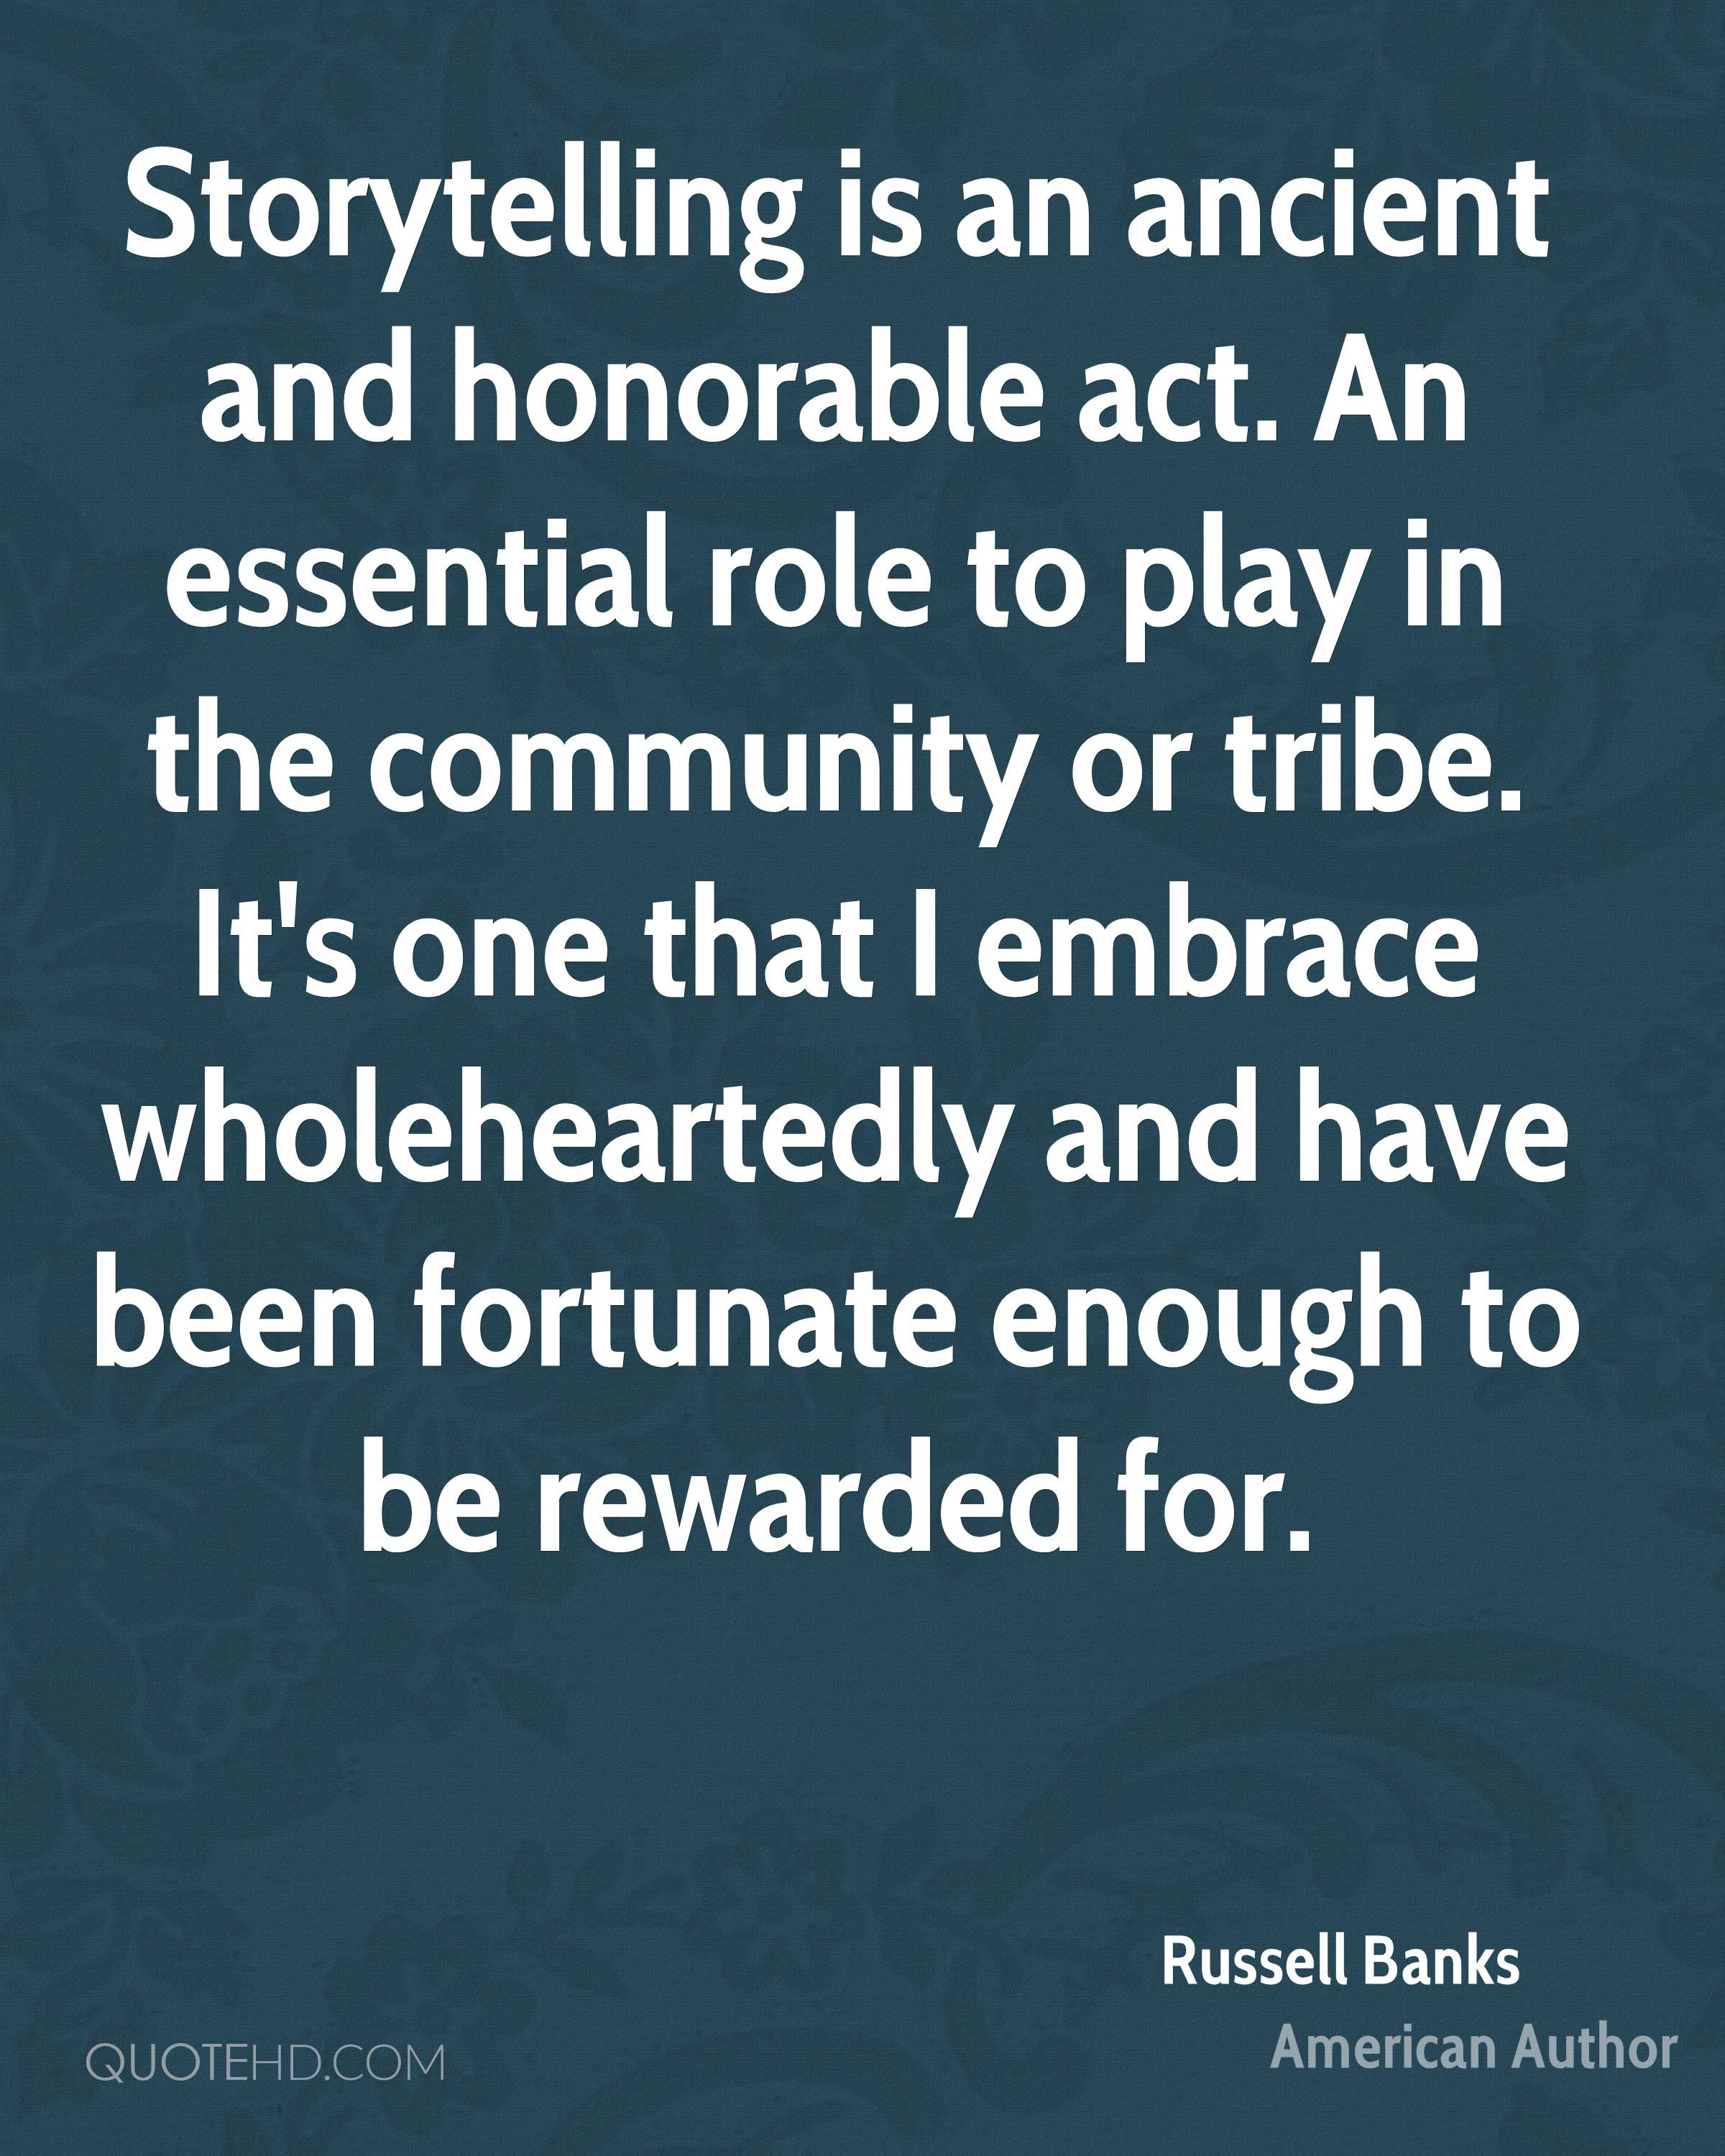 Storytelling is an ancient and honorable act. An essential role to play in the community or tribe. It's one that I embrace wholeheartedly and have been fortunate enough to be rewarded for.